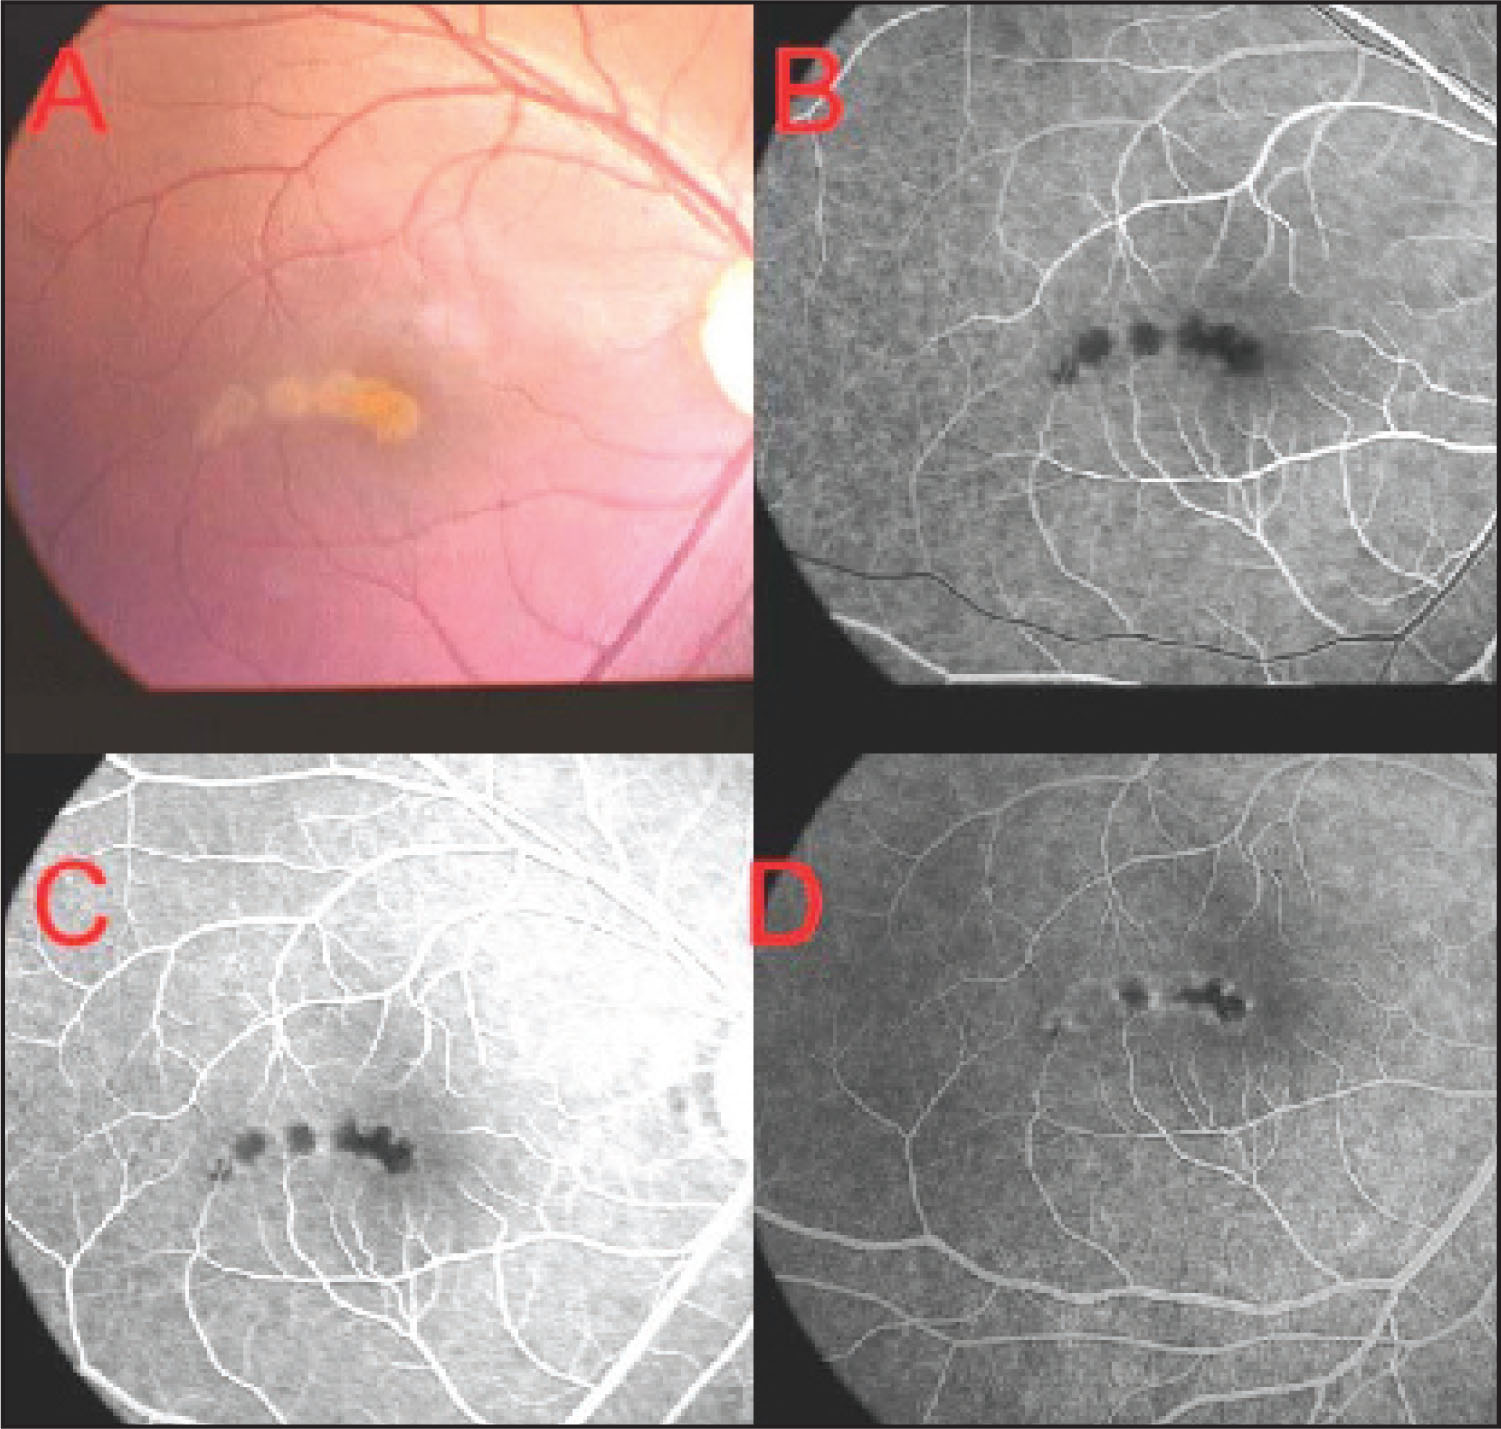 (A, B) Six Whitish Round Lesions in Macular Area Starting from Fovea and Going Inferio-Temporal. (C) Fluorescein Angiography Showed Blocked Fluorescence in the Early Phases. (D) Mild Staining of the Lesions in Later Phrases.